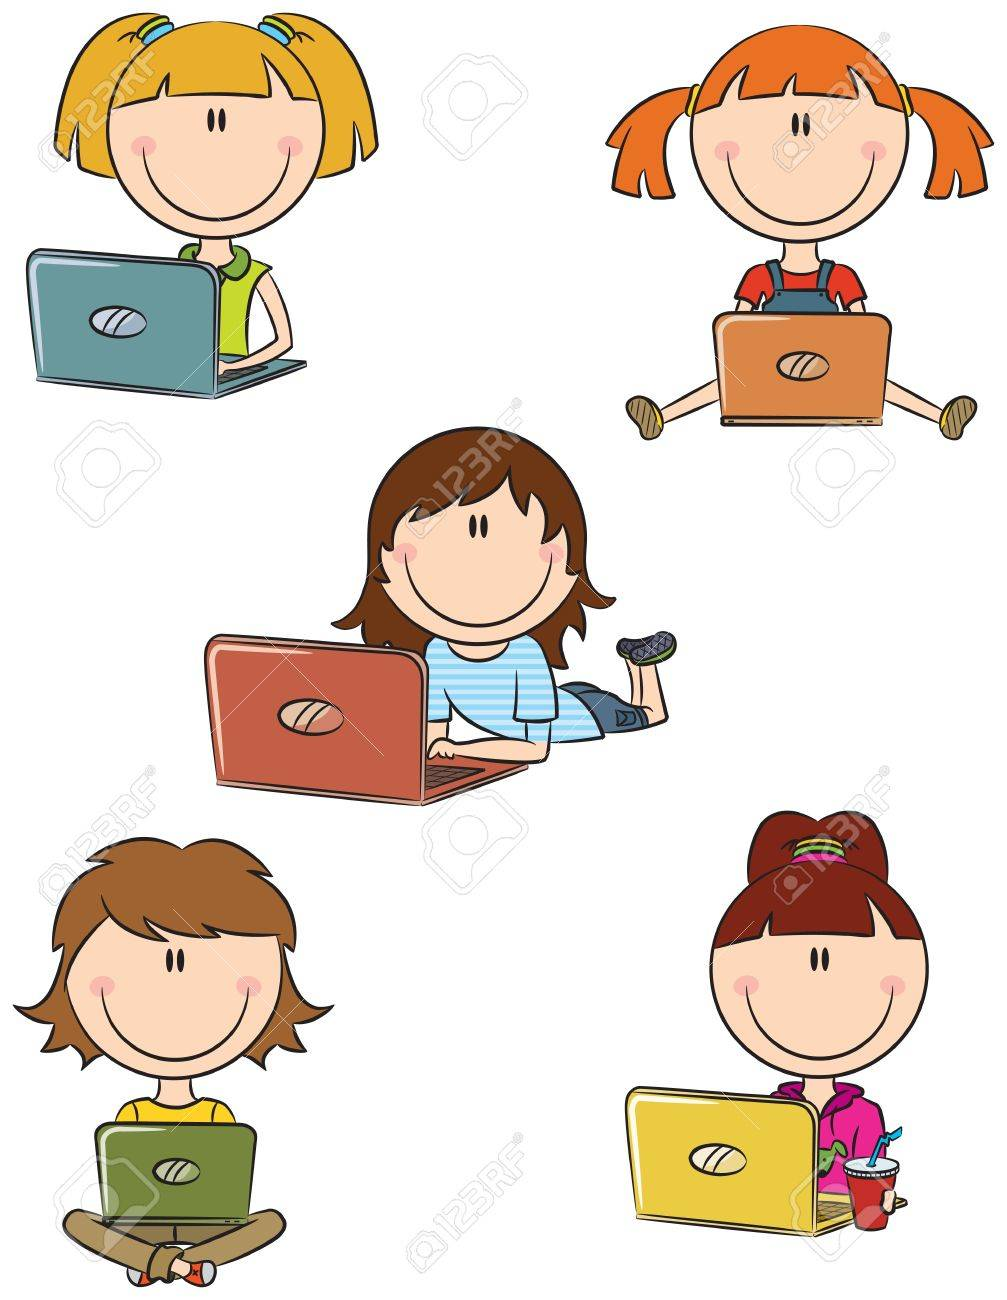 Cute cheerful  girls with laptops sitting in different poses Stock Vector - 14375192